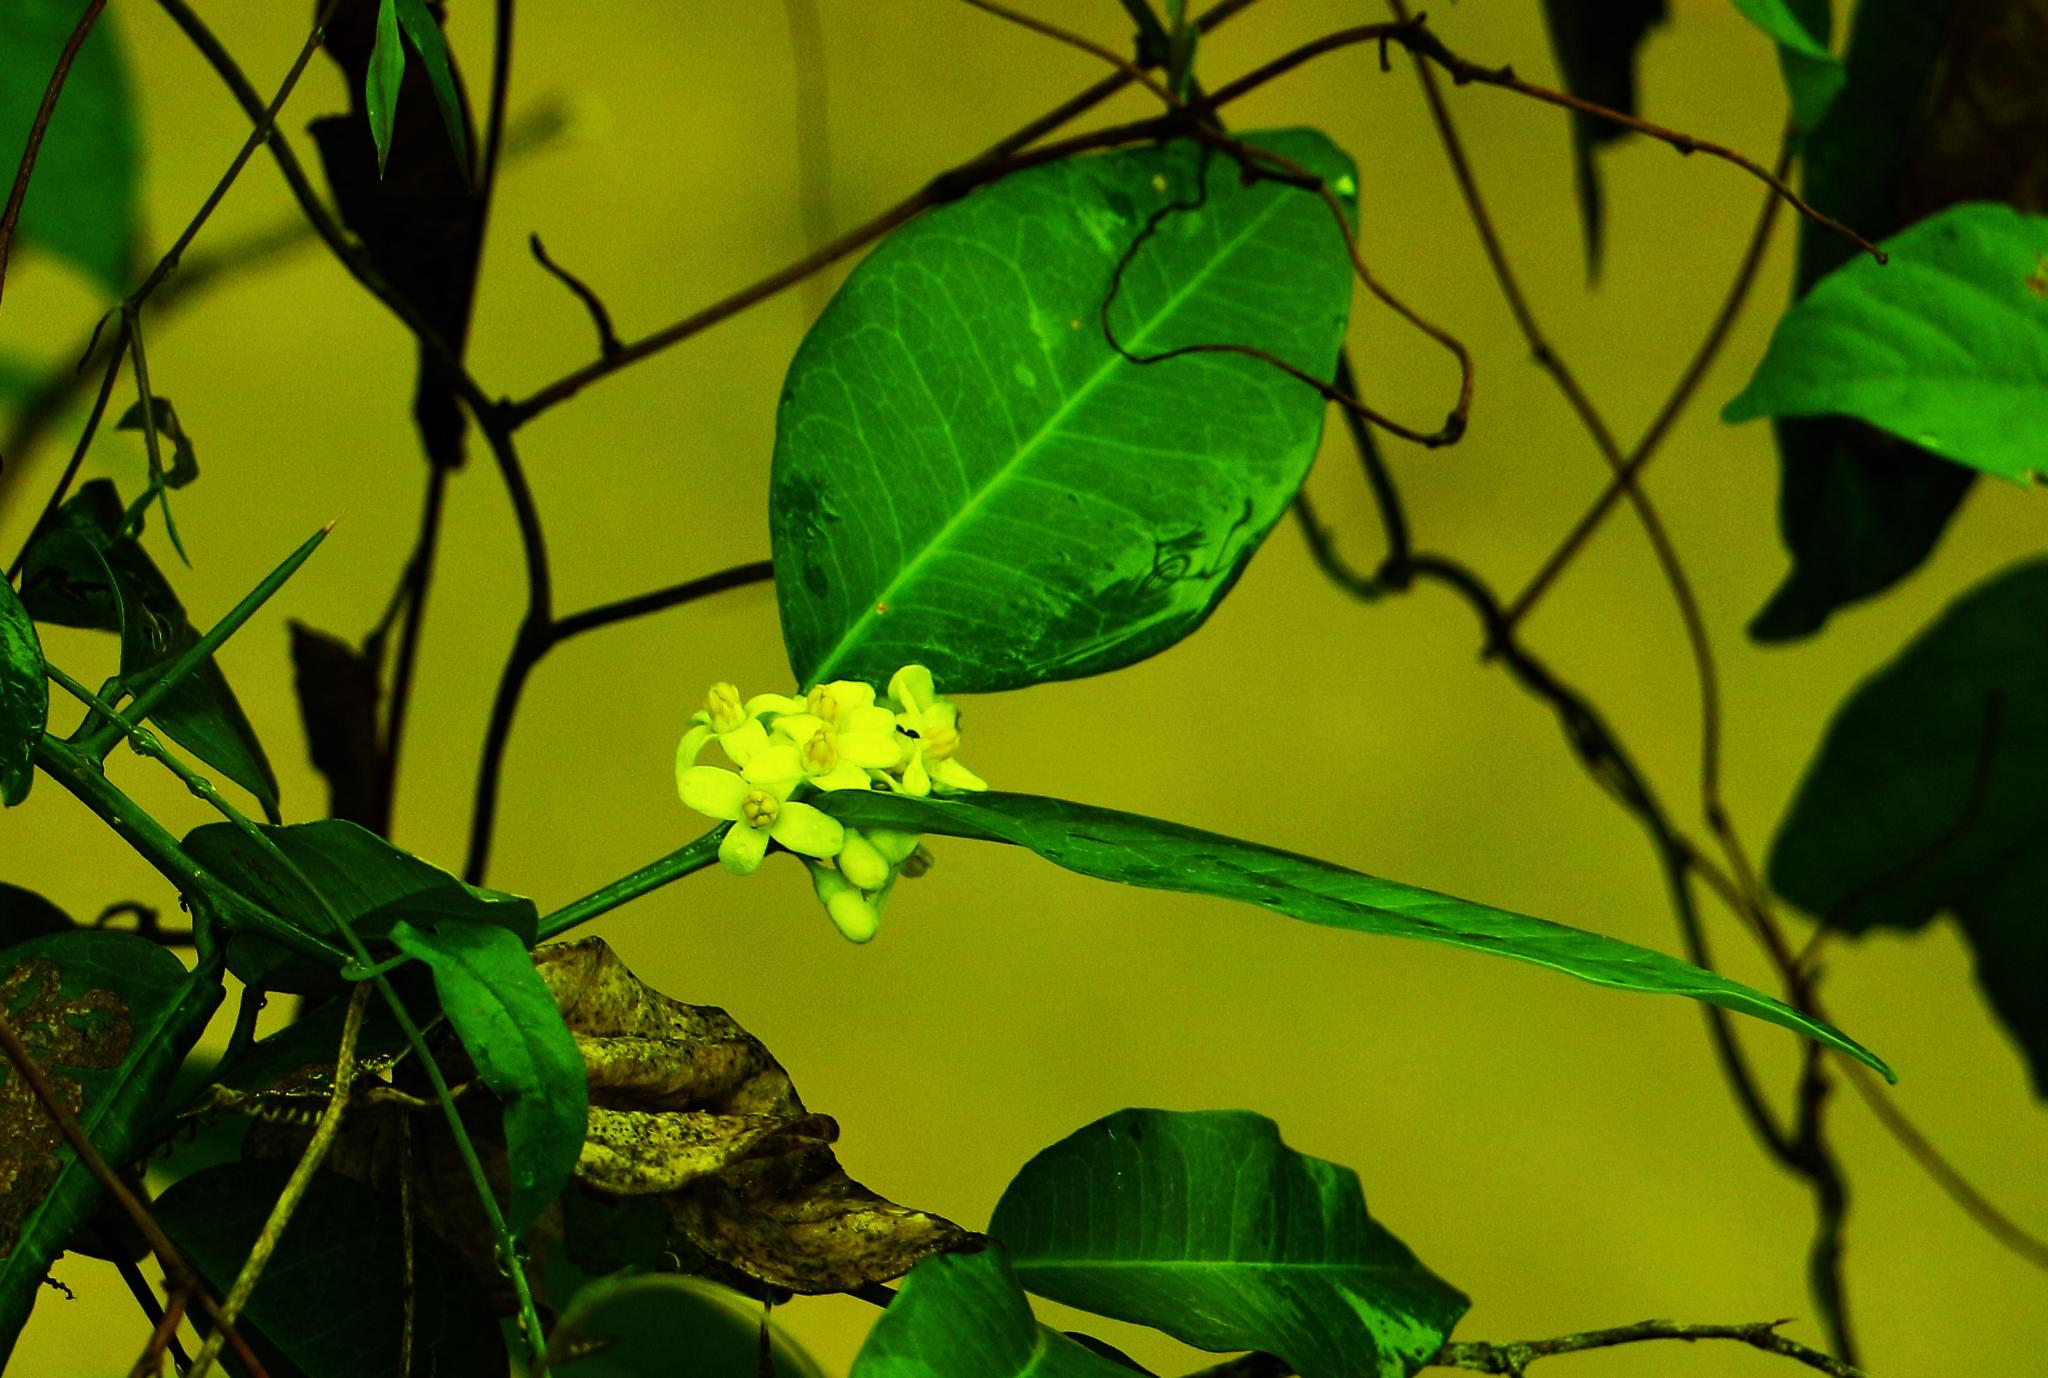 Wild Lime Green Leaf And Flowers. by A.Samathasena